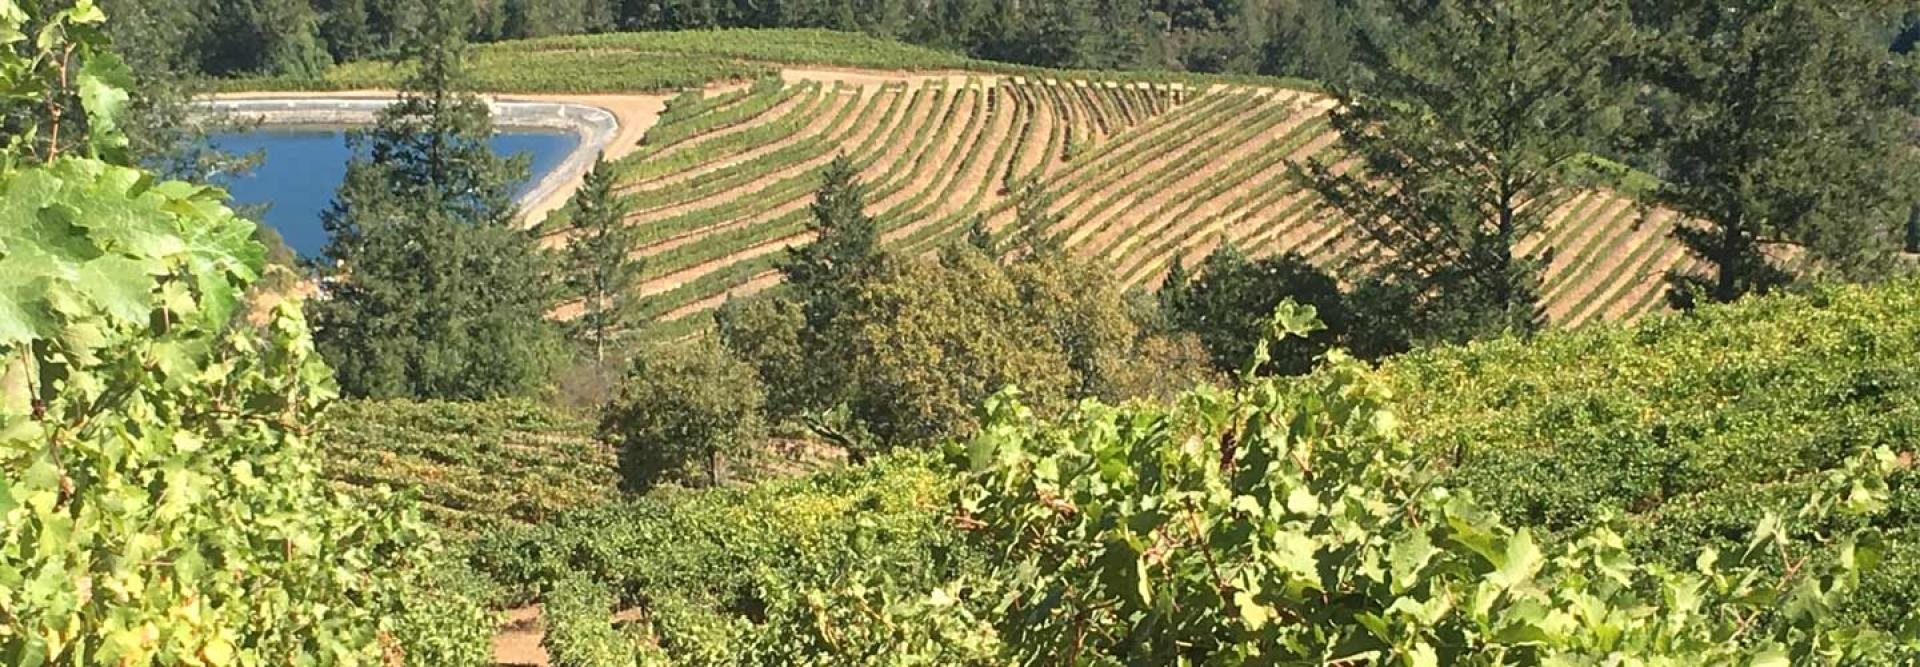 Hidden Ridge Vineyard Overview